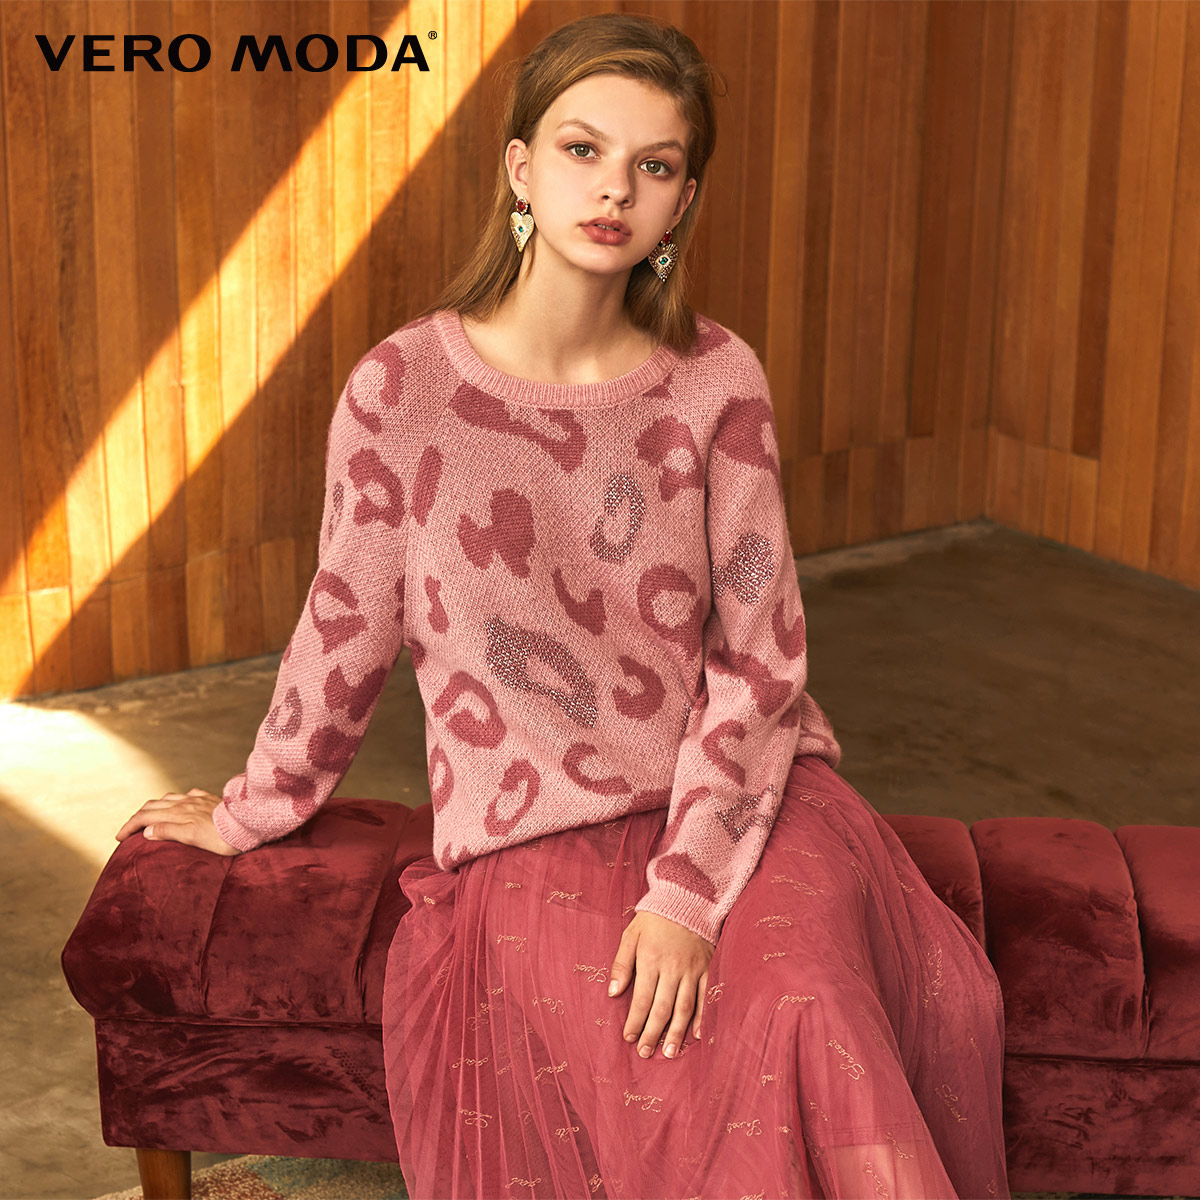 Vero Moda New Women's Loose Fit Leopard Print Sheep Wool Knit Sweater | 319413514